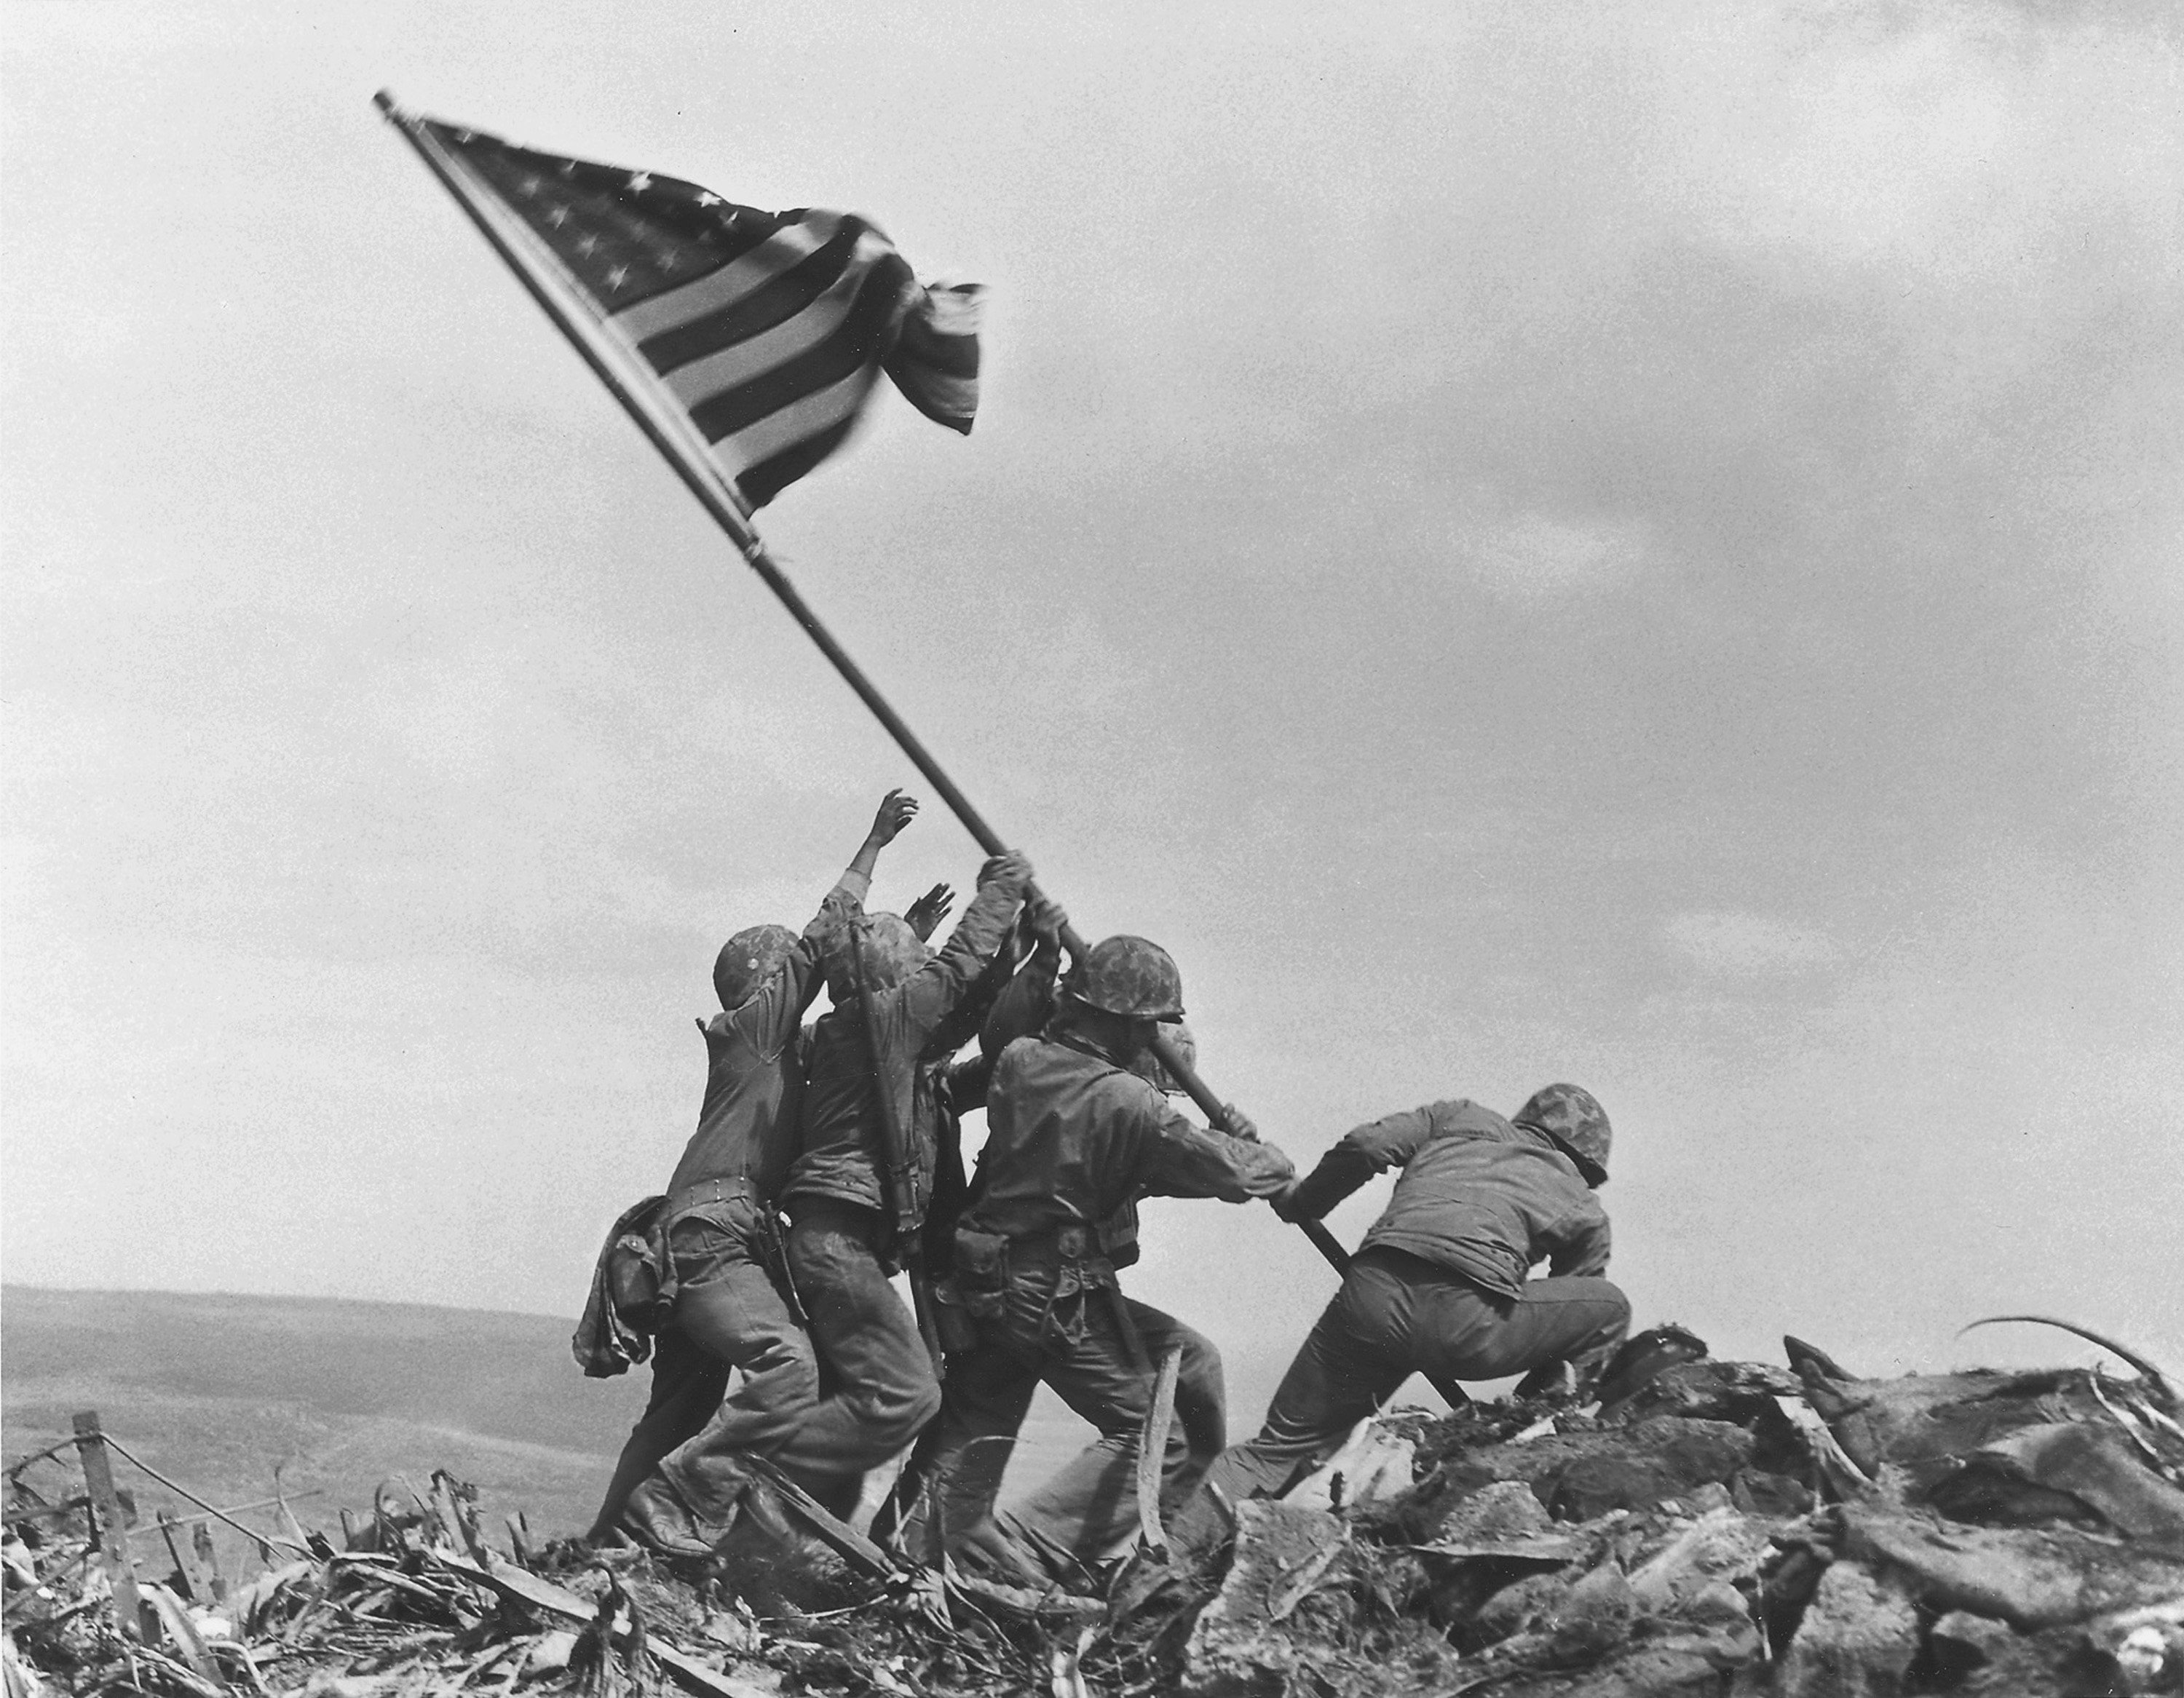 Another man in the iconic Iwo Jima photo was misidentified, Marine Corps says